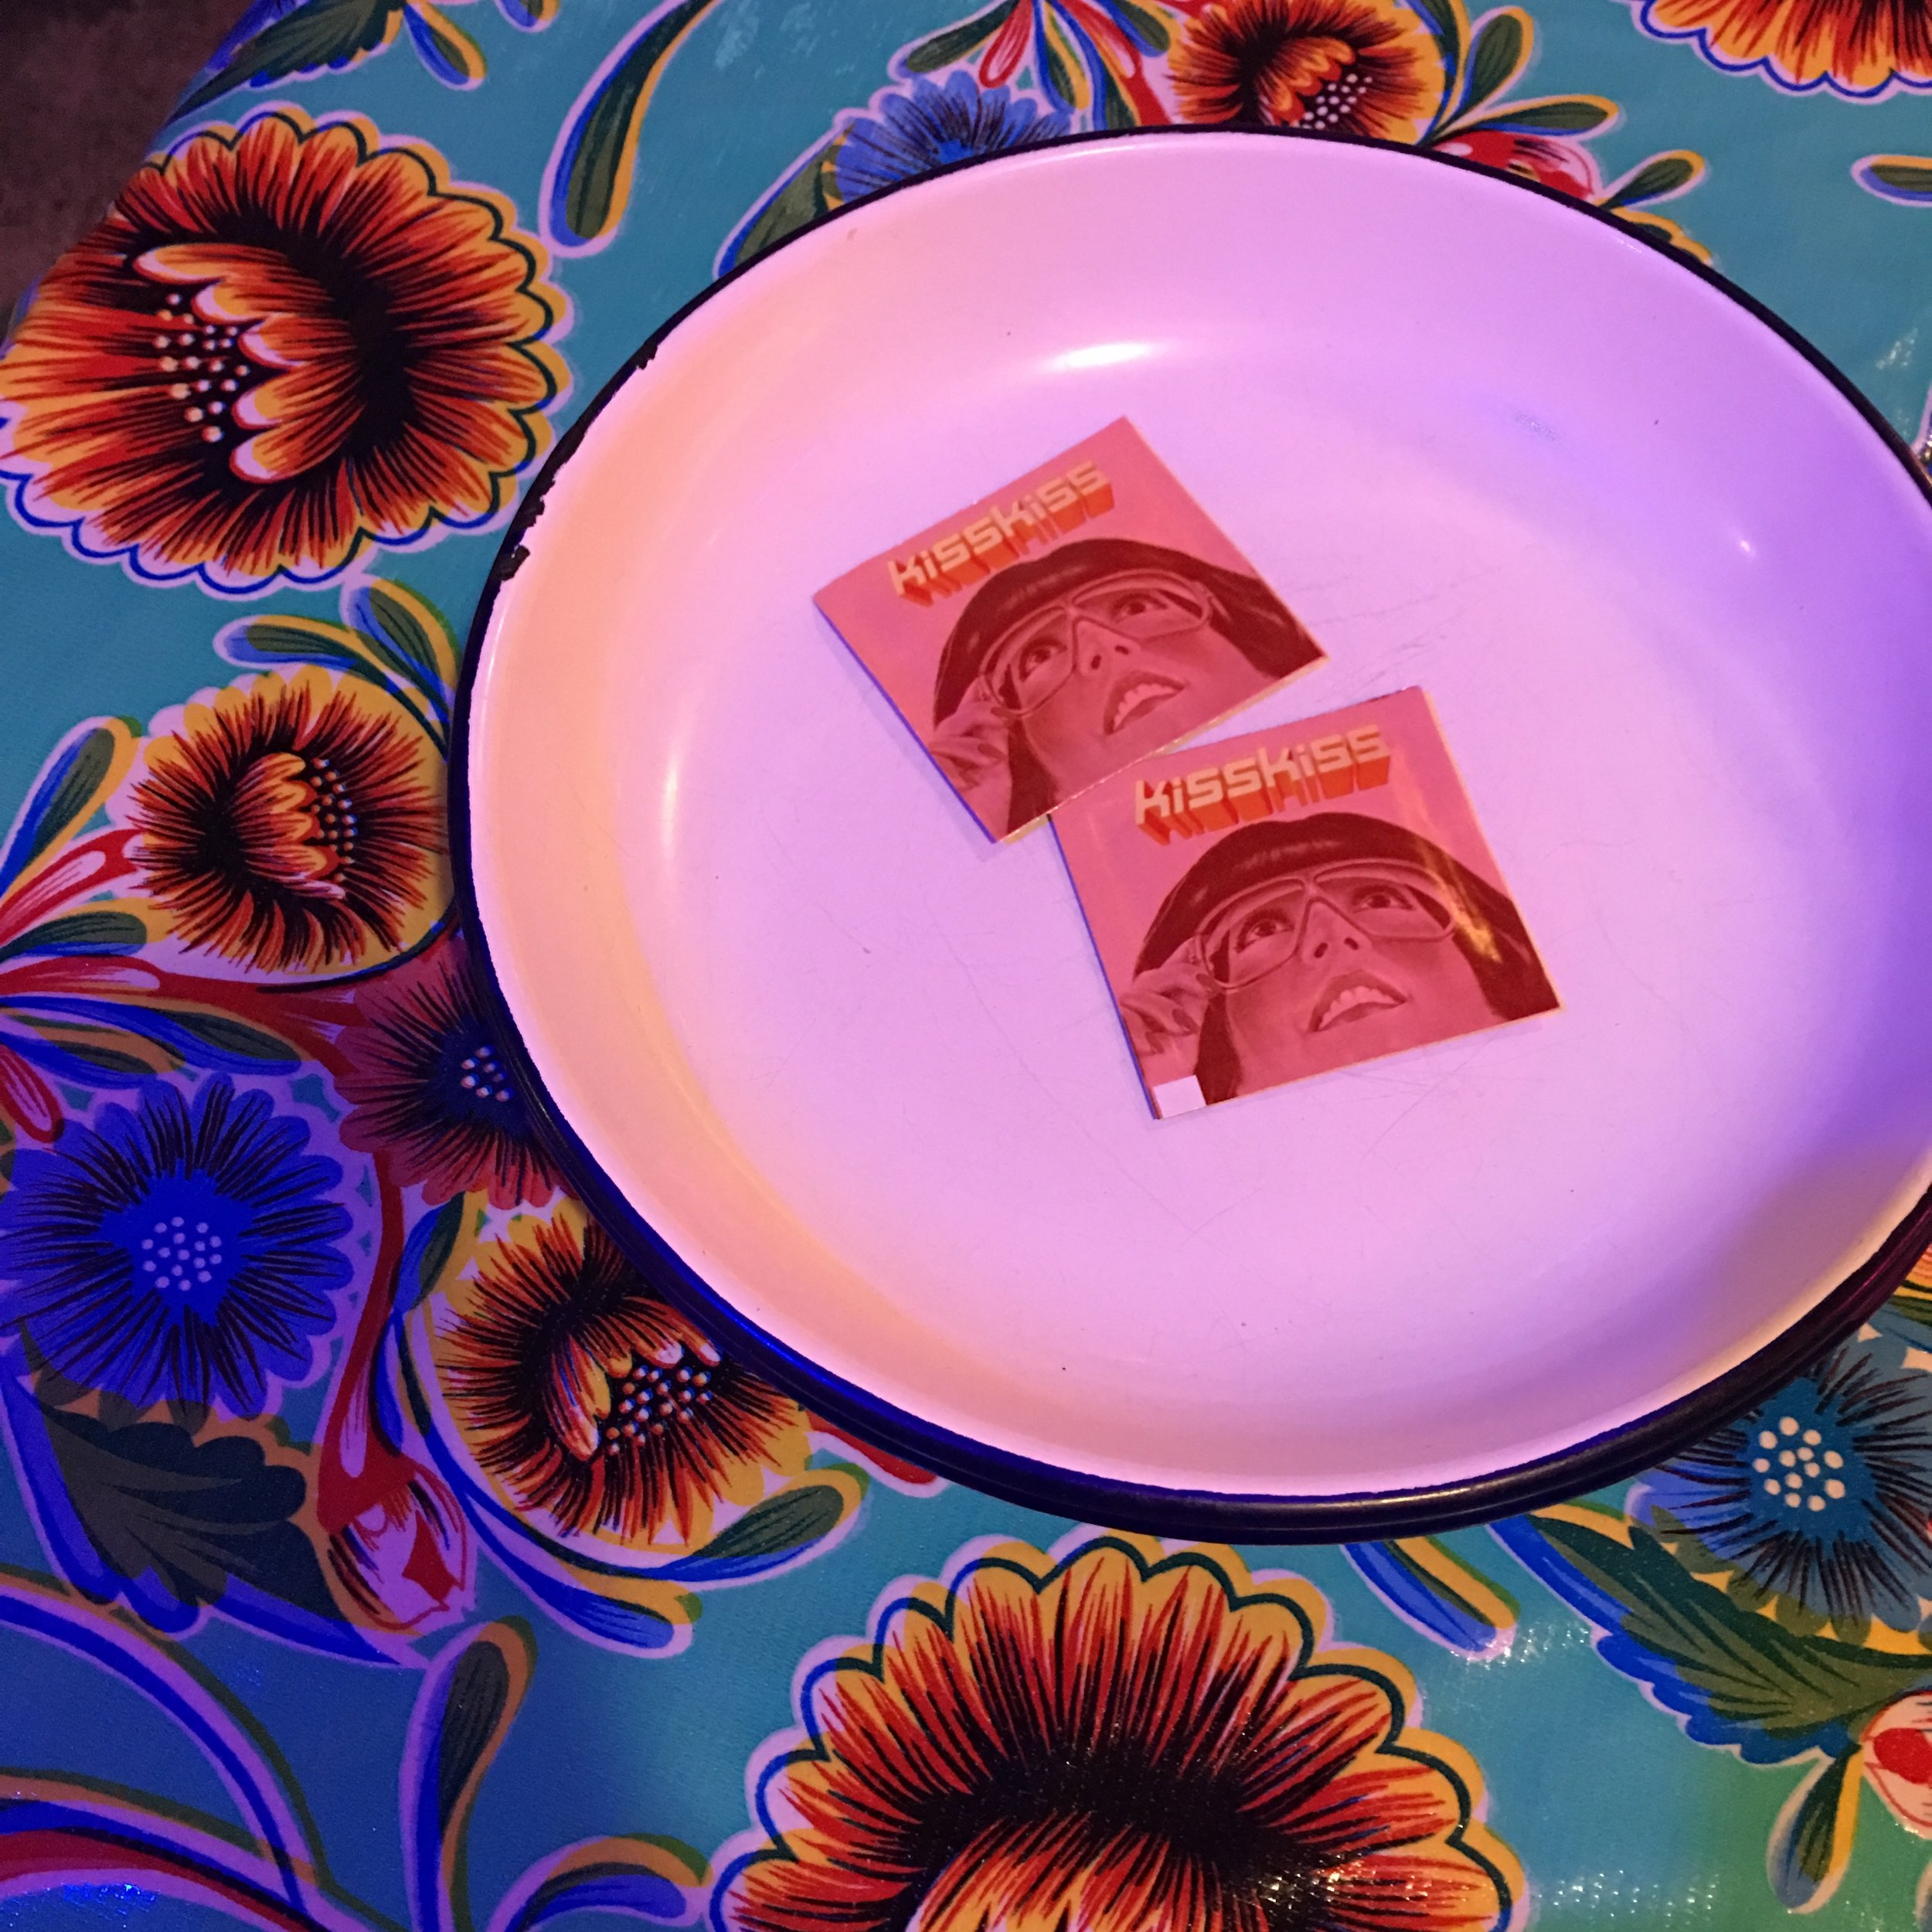 Kiss Kiss hand towelettes on enamel plate.